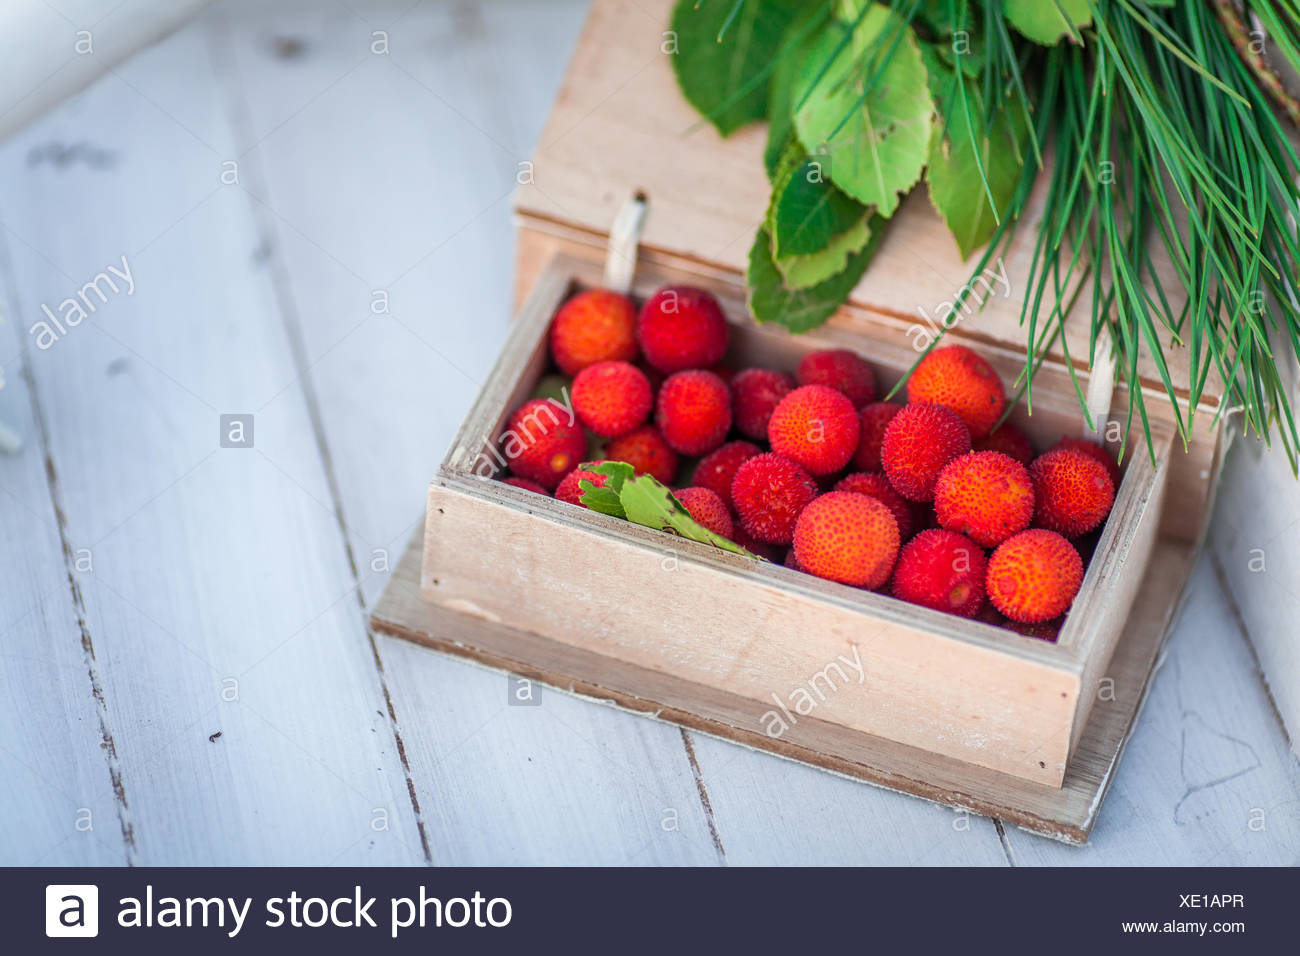 Wooden box of lychee fruit - Stock Image